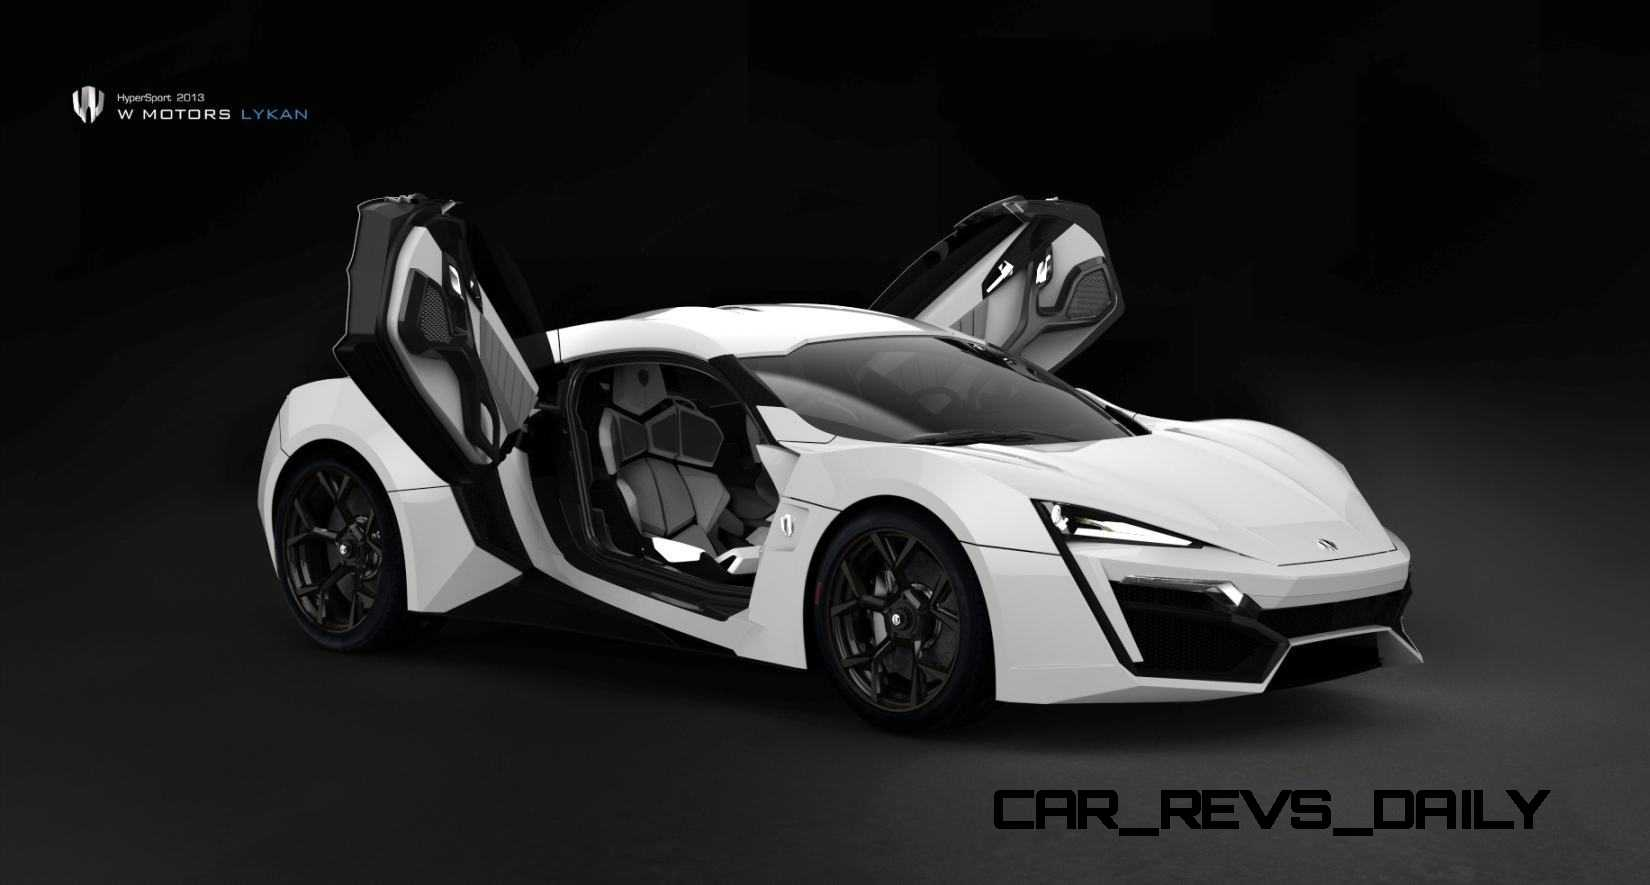 2014 W Motors Lykan Hypersport In 40 Amazing New Wallpapers Including Megalux Interior 33